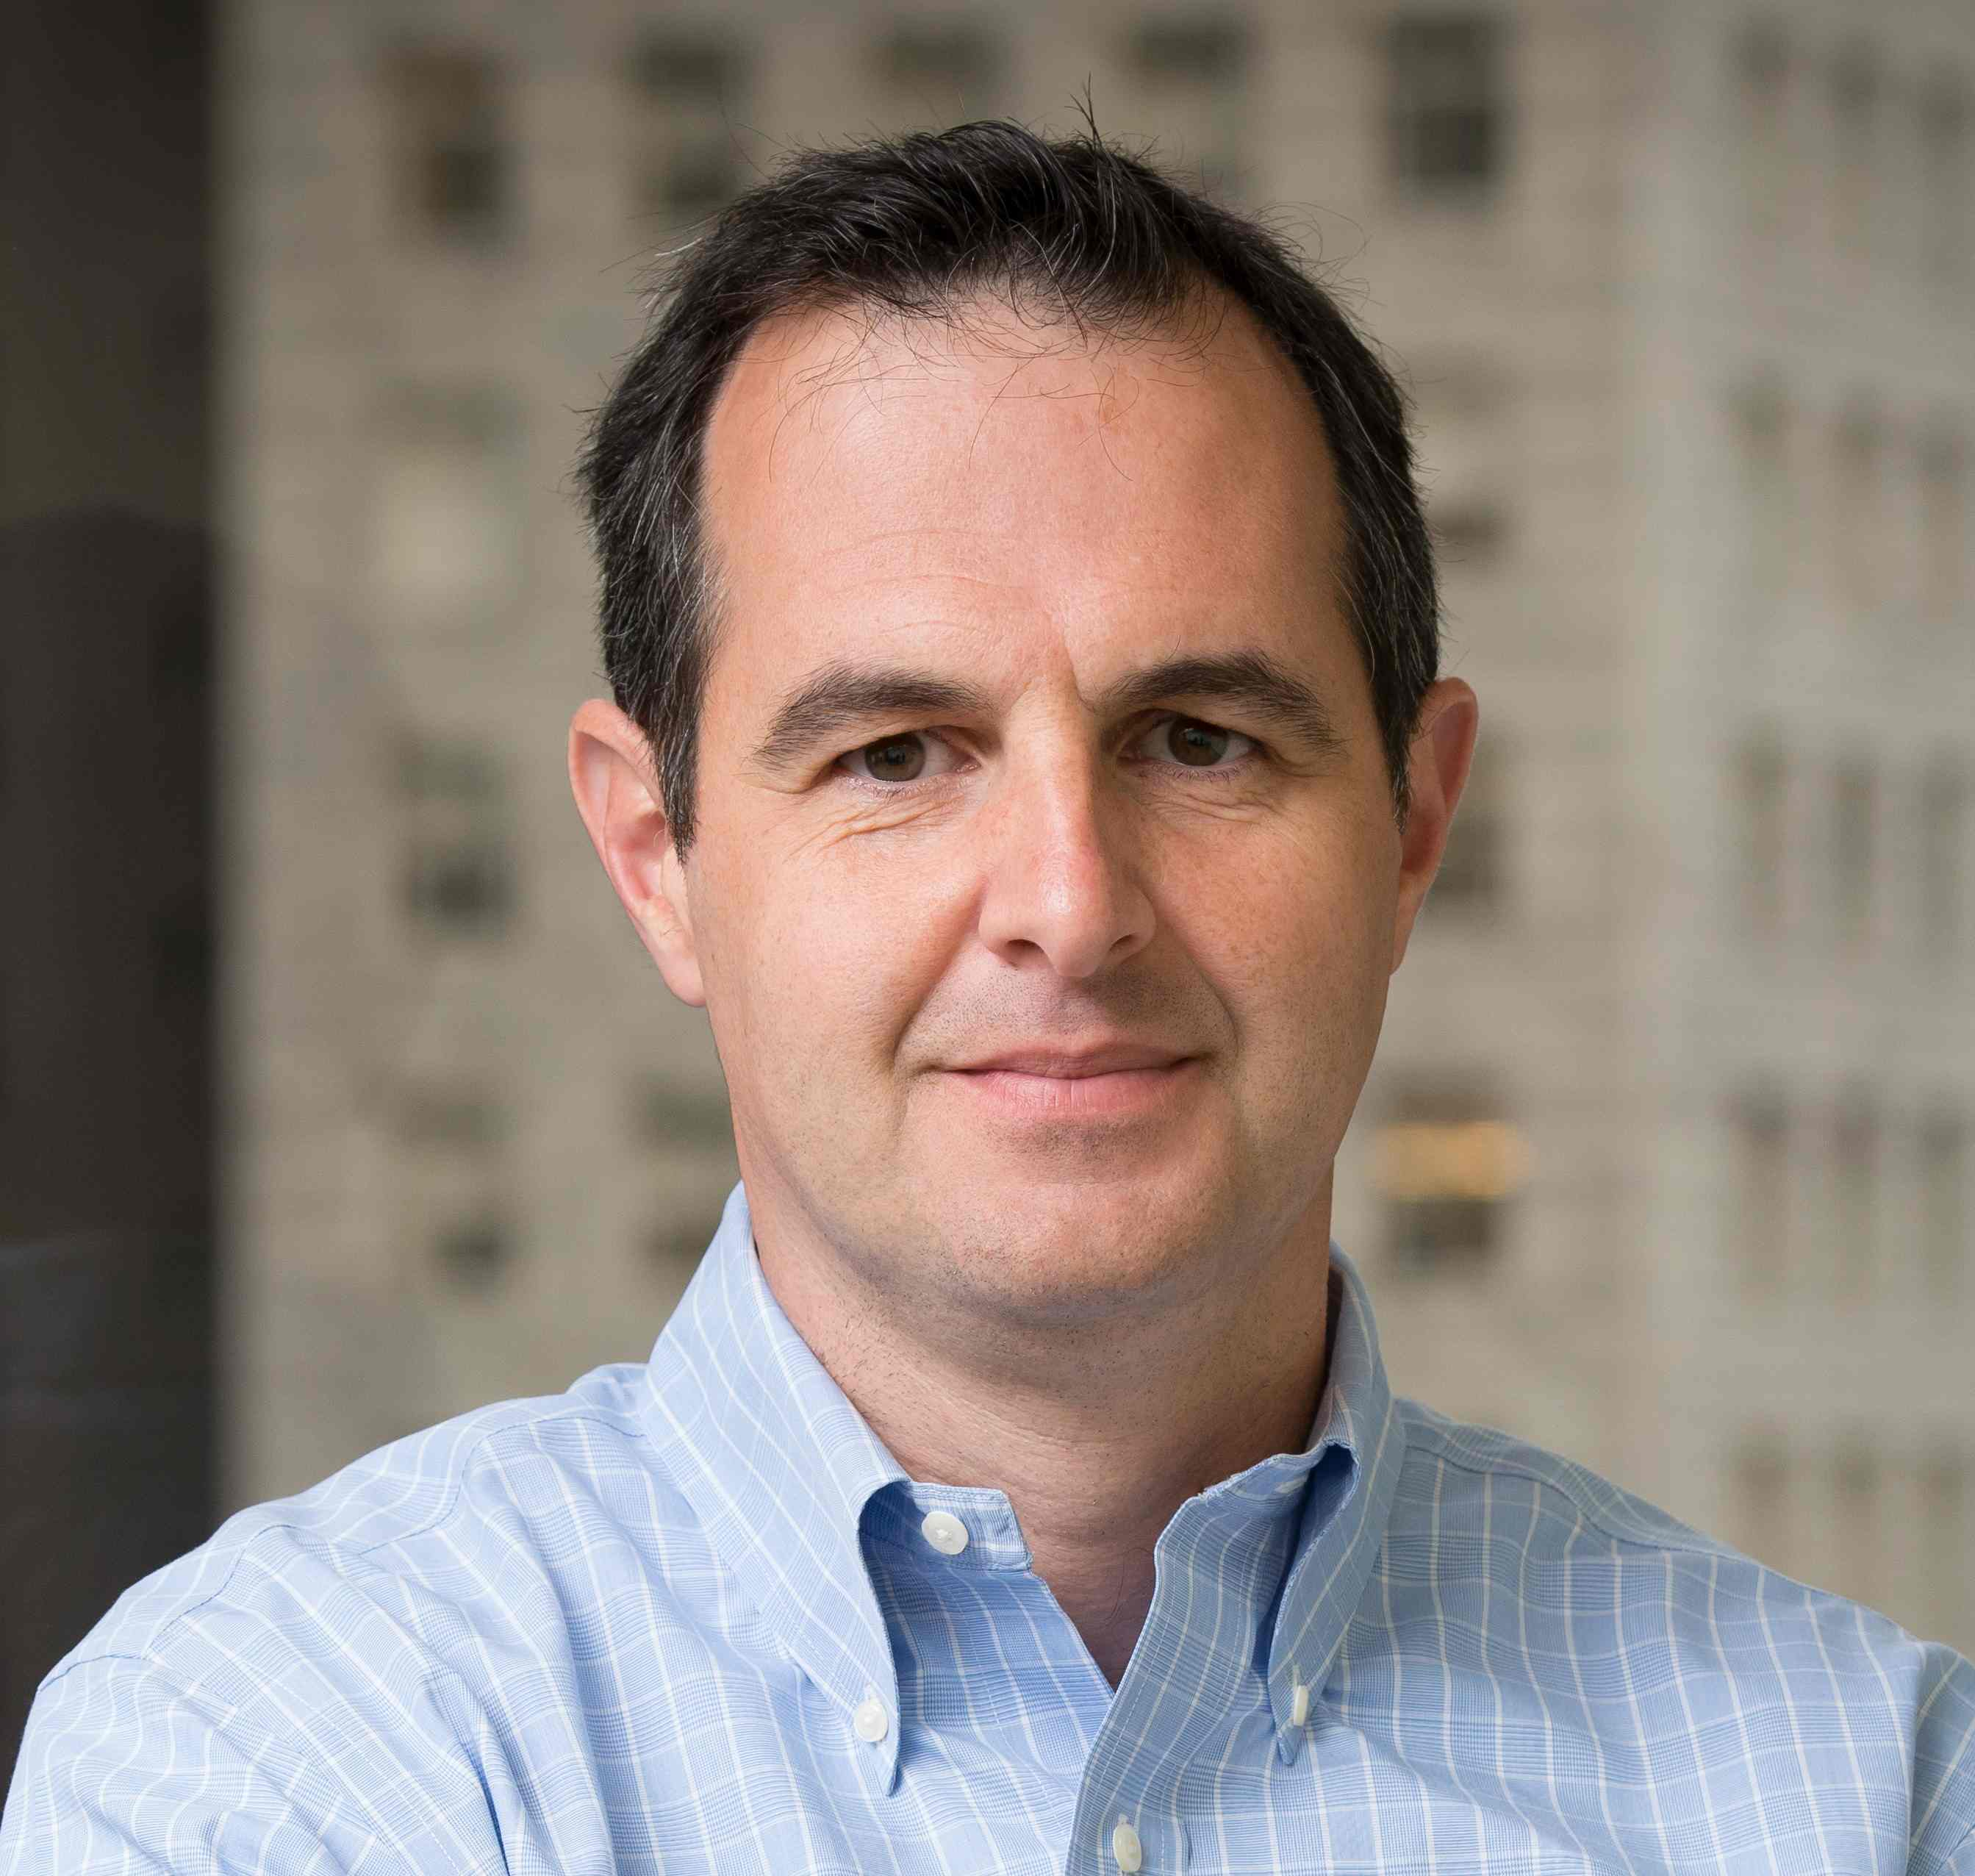 Reputation, Regulation and Retail – An Interview With Renaud Laplanche